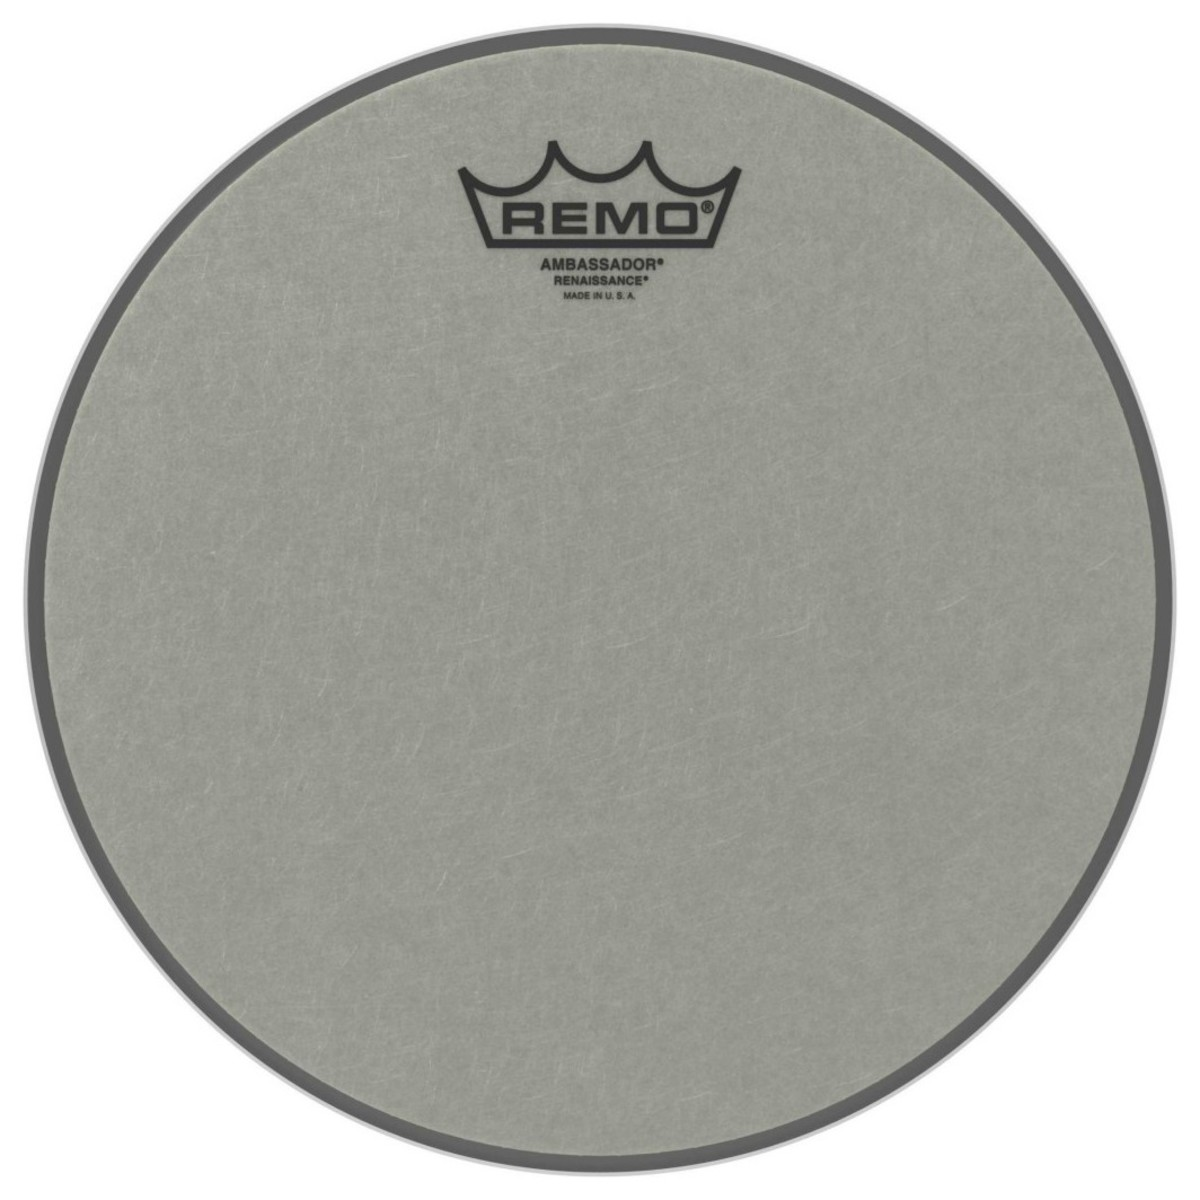 Click to view product details and reviews for Remo Ambassador Renaissance 8 Drum Head.